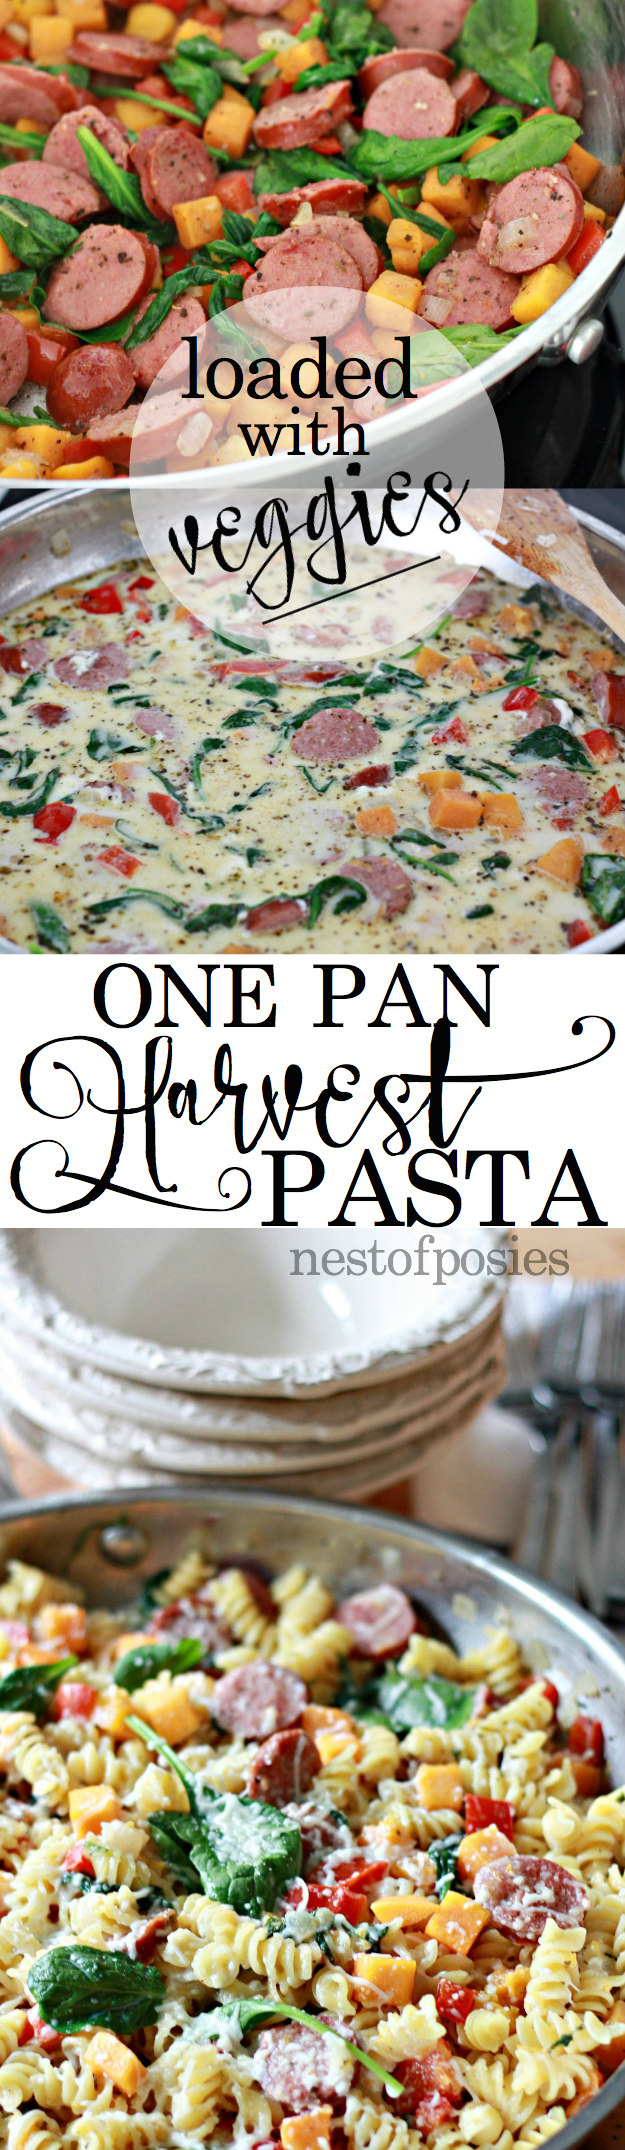 One Pan Harvest Pasta. A hearty meal for your family loaded with good for you veggies!